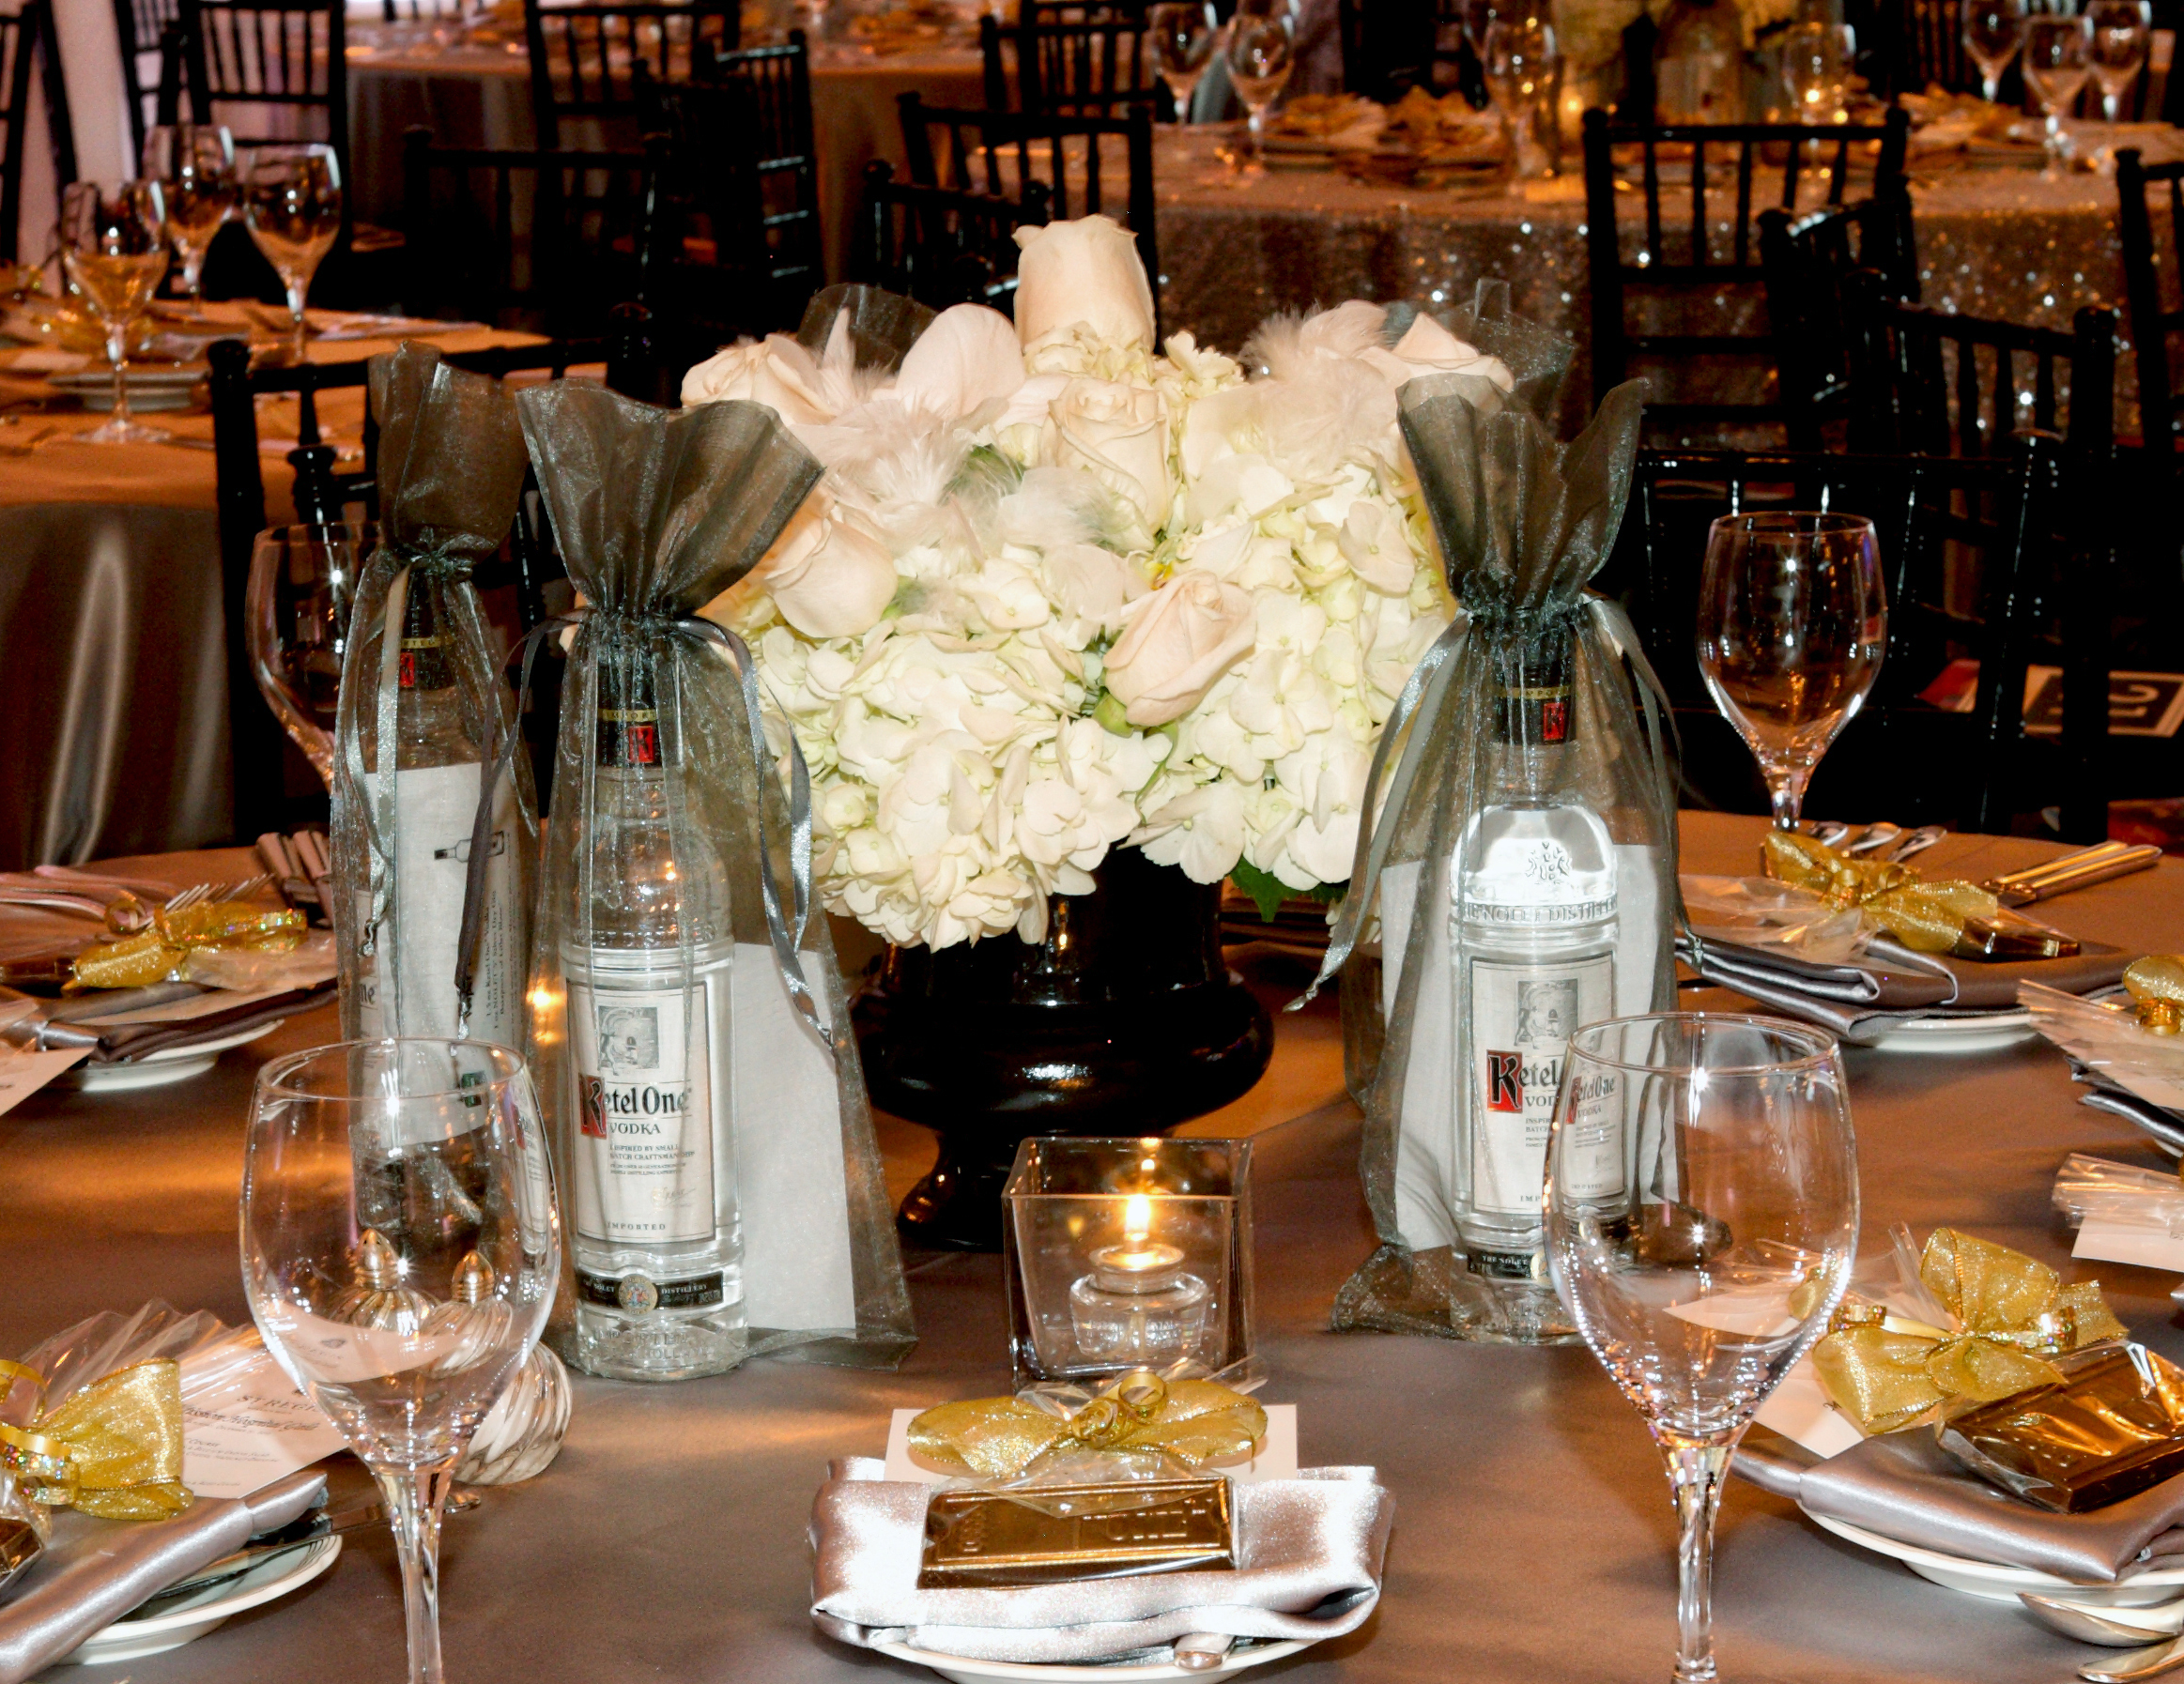 """MISSION HOSPITAL: HOLIDAY GALA   """"Thanks to Rob's contributions to the Holiday Gala, the decor elements played an important role in raising event net proceeds of over $3.1 million over the past three years to benefit the life-saving work at Mission.""""   Read Letter"""